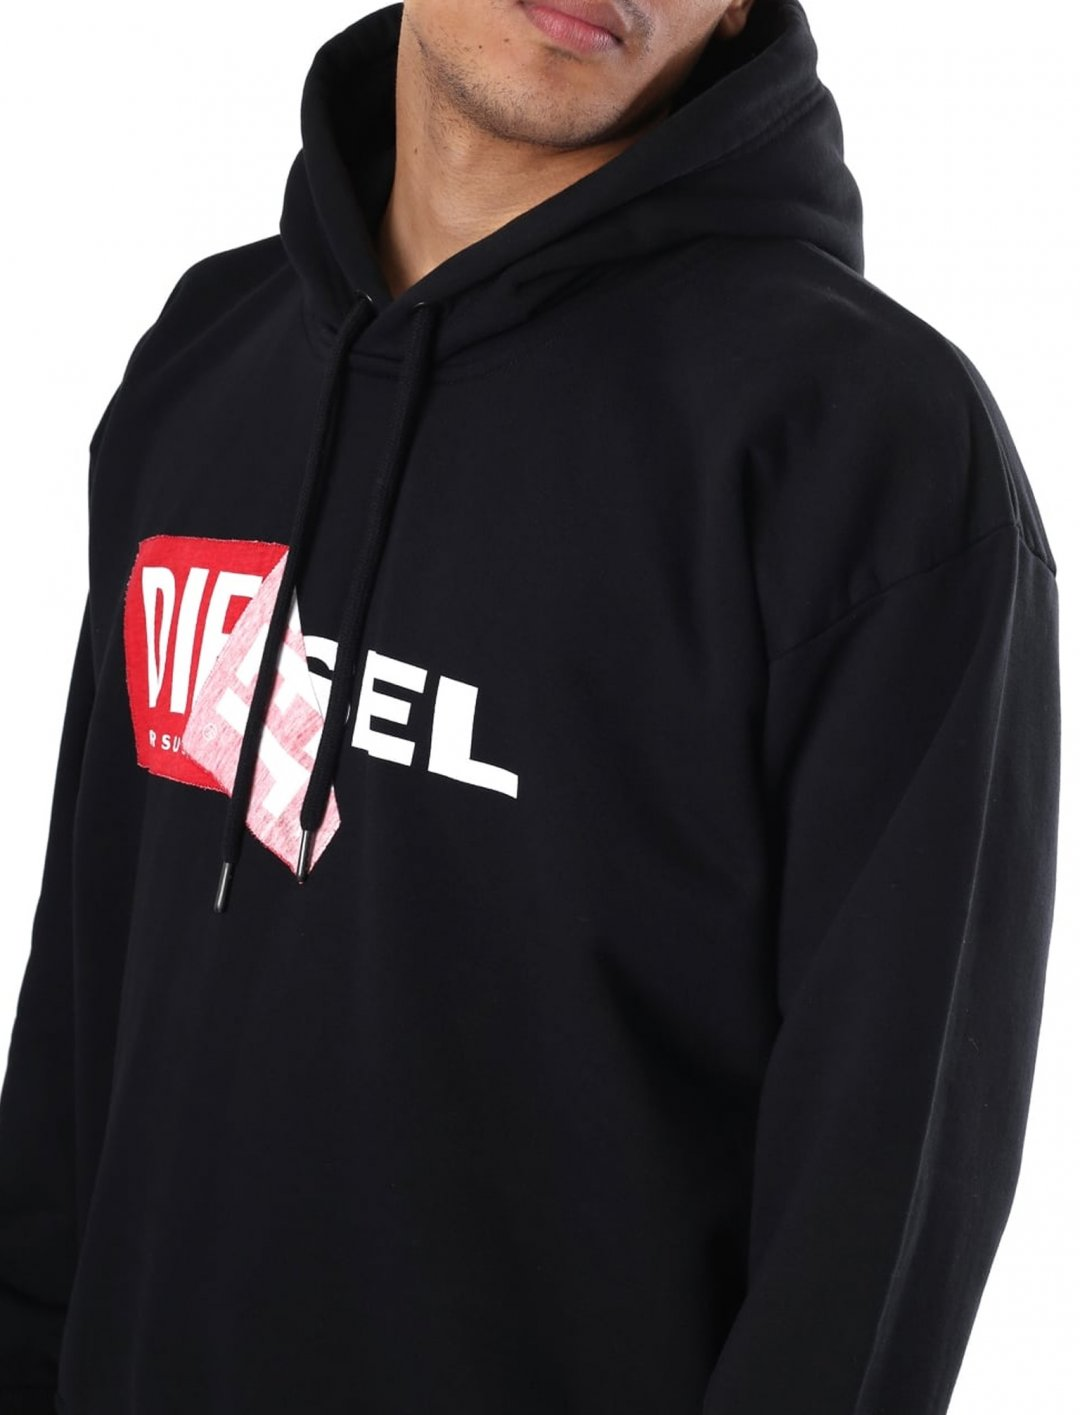 "Diesel Alby Hoody {""id"":5,""product_section_id"":1,""name"":""Clothing"",""order"":5} Diesel"